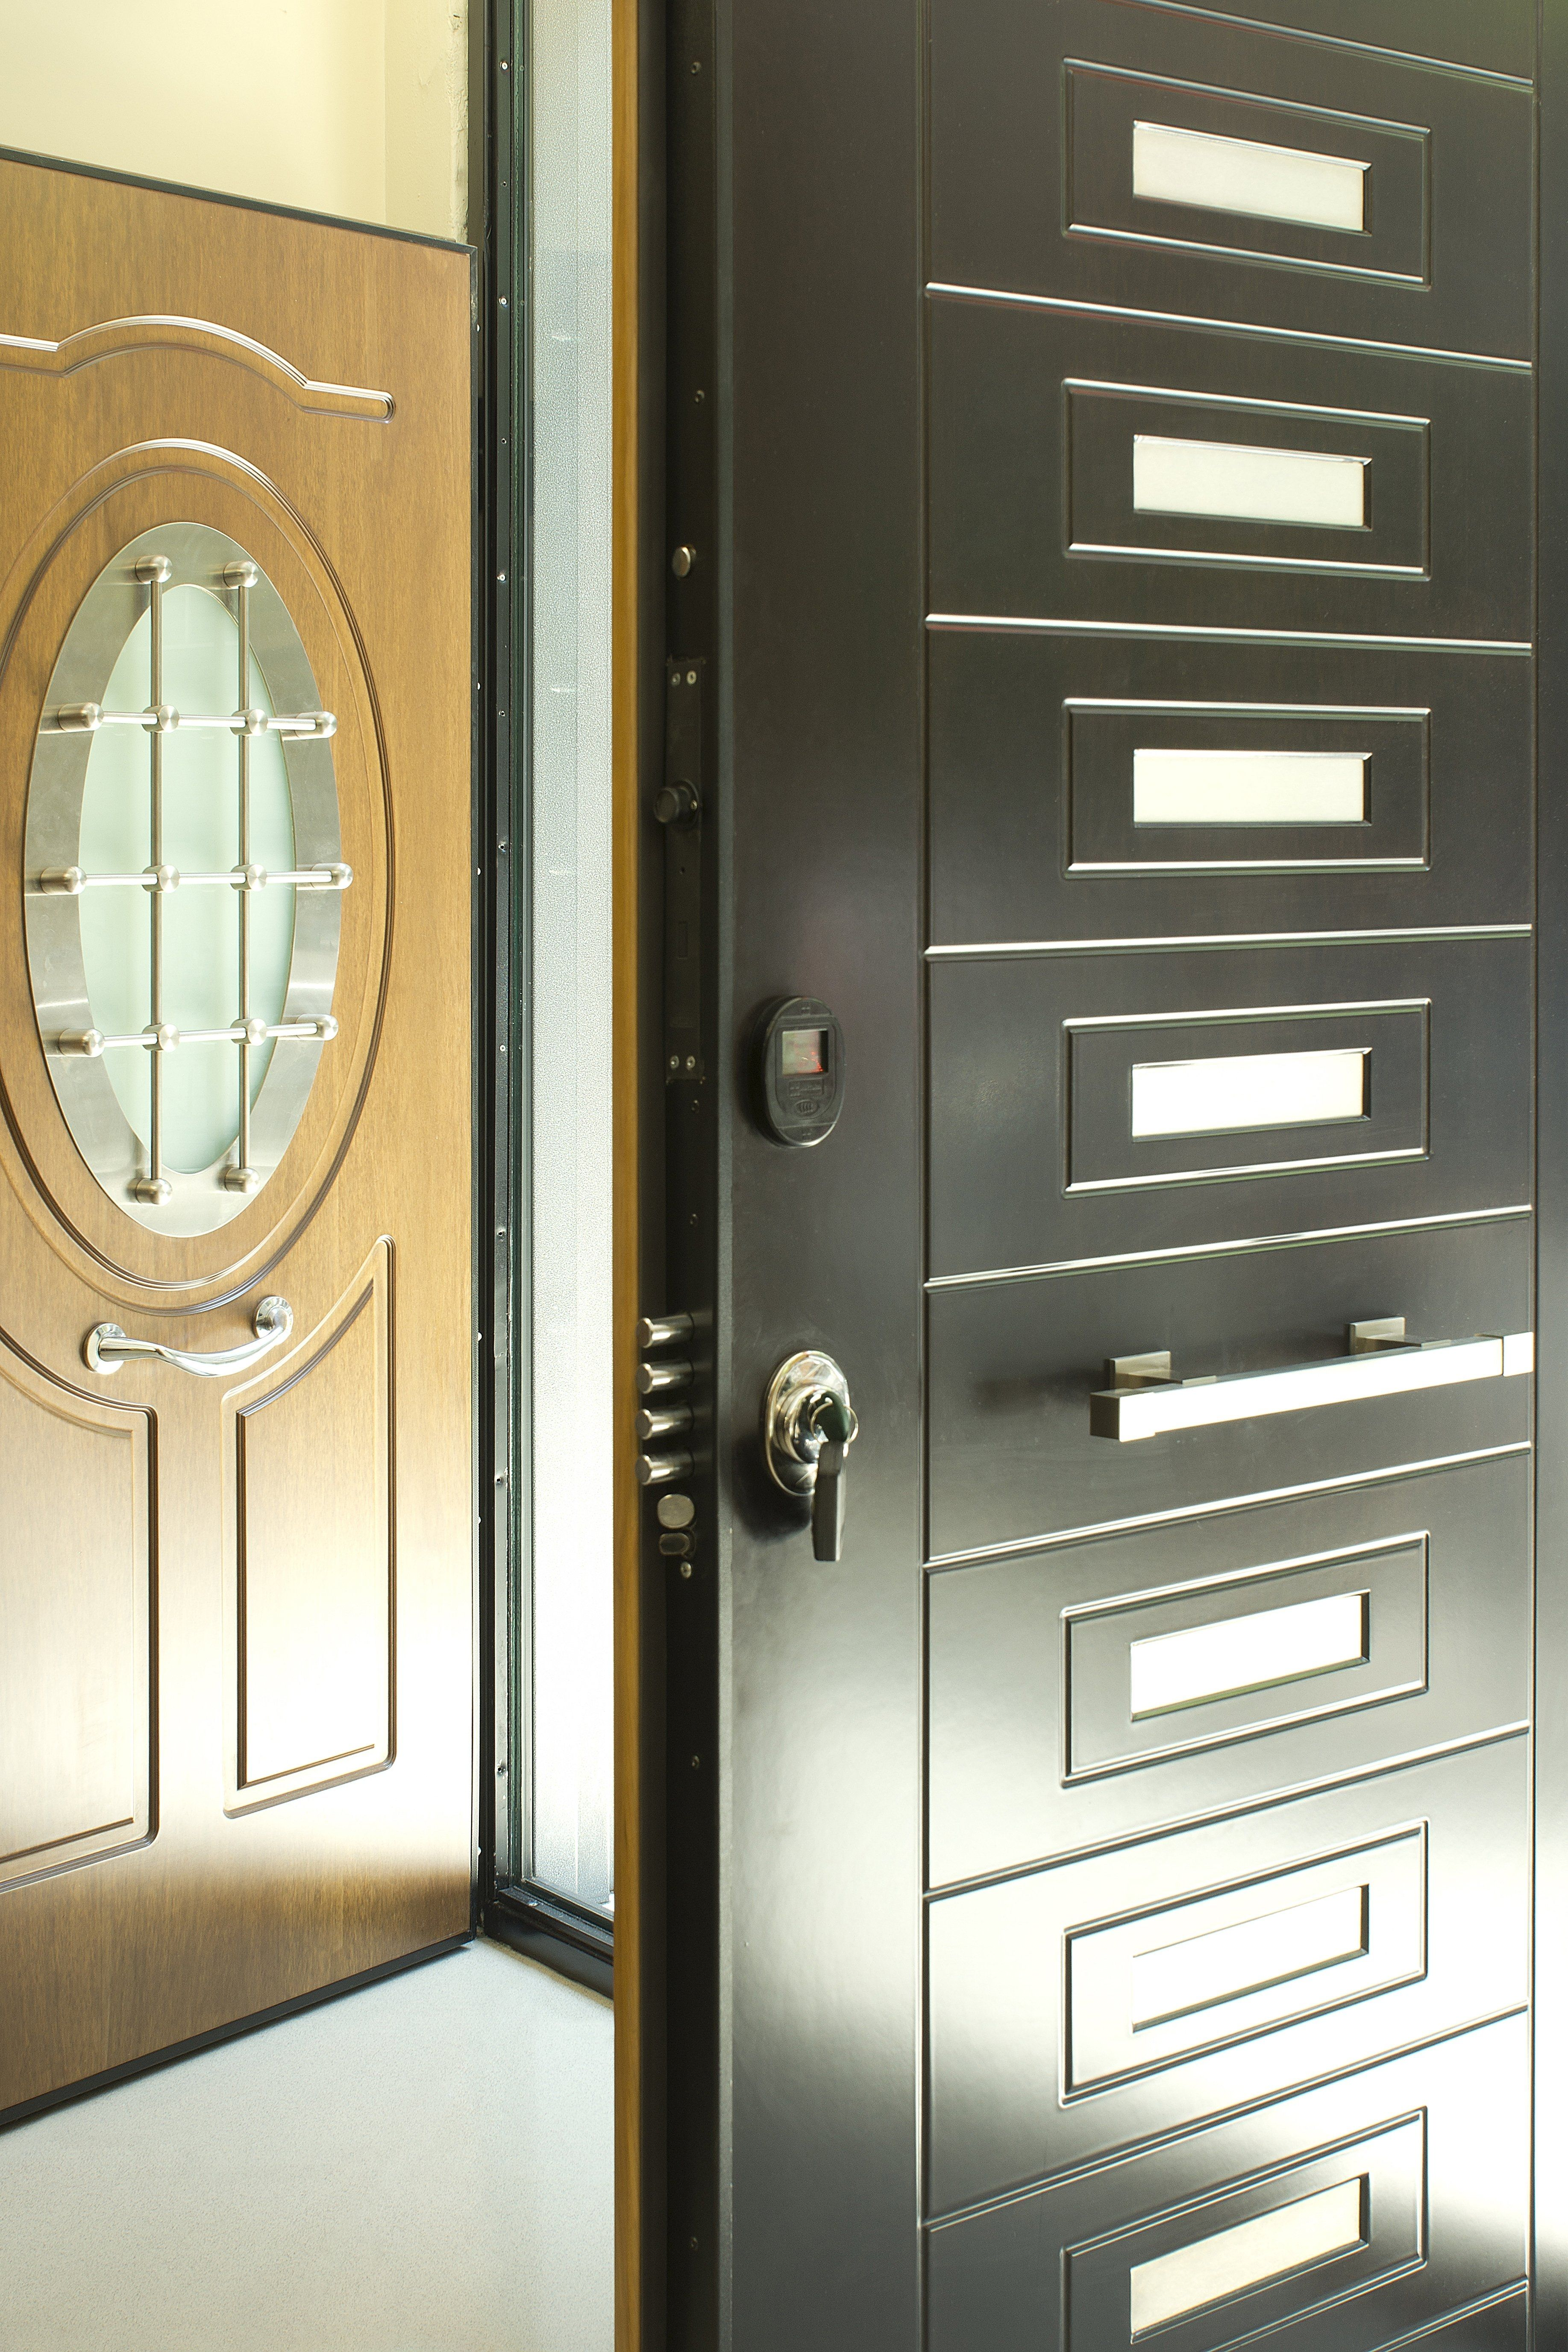 Most Secure Entry Door Image collections - Doors Design Ideas